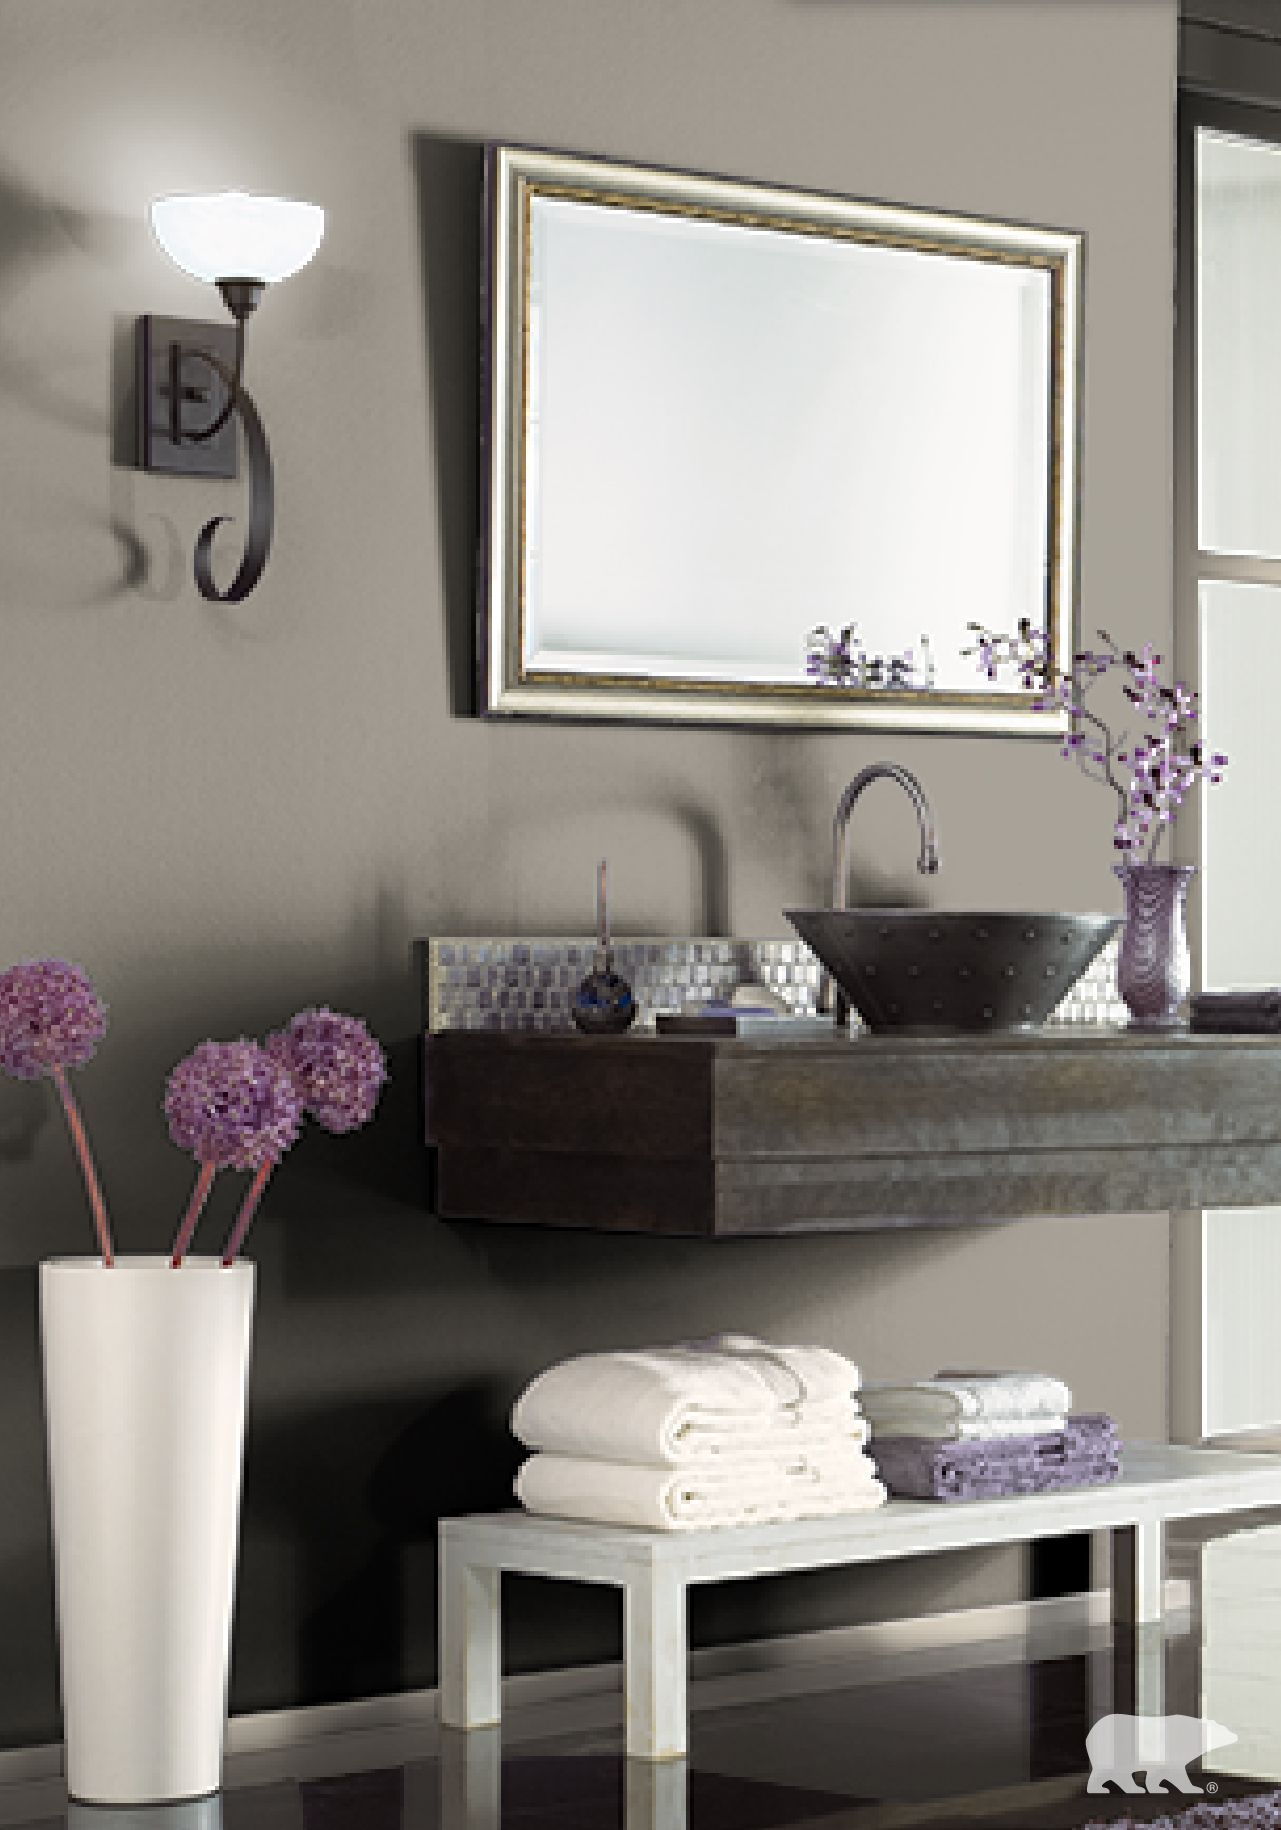 Pin by tiffany albertsen horsch on bathroom ideas in 2019 - Purple paint colors for bathrooms ...